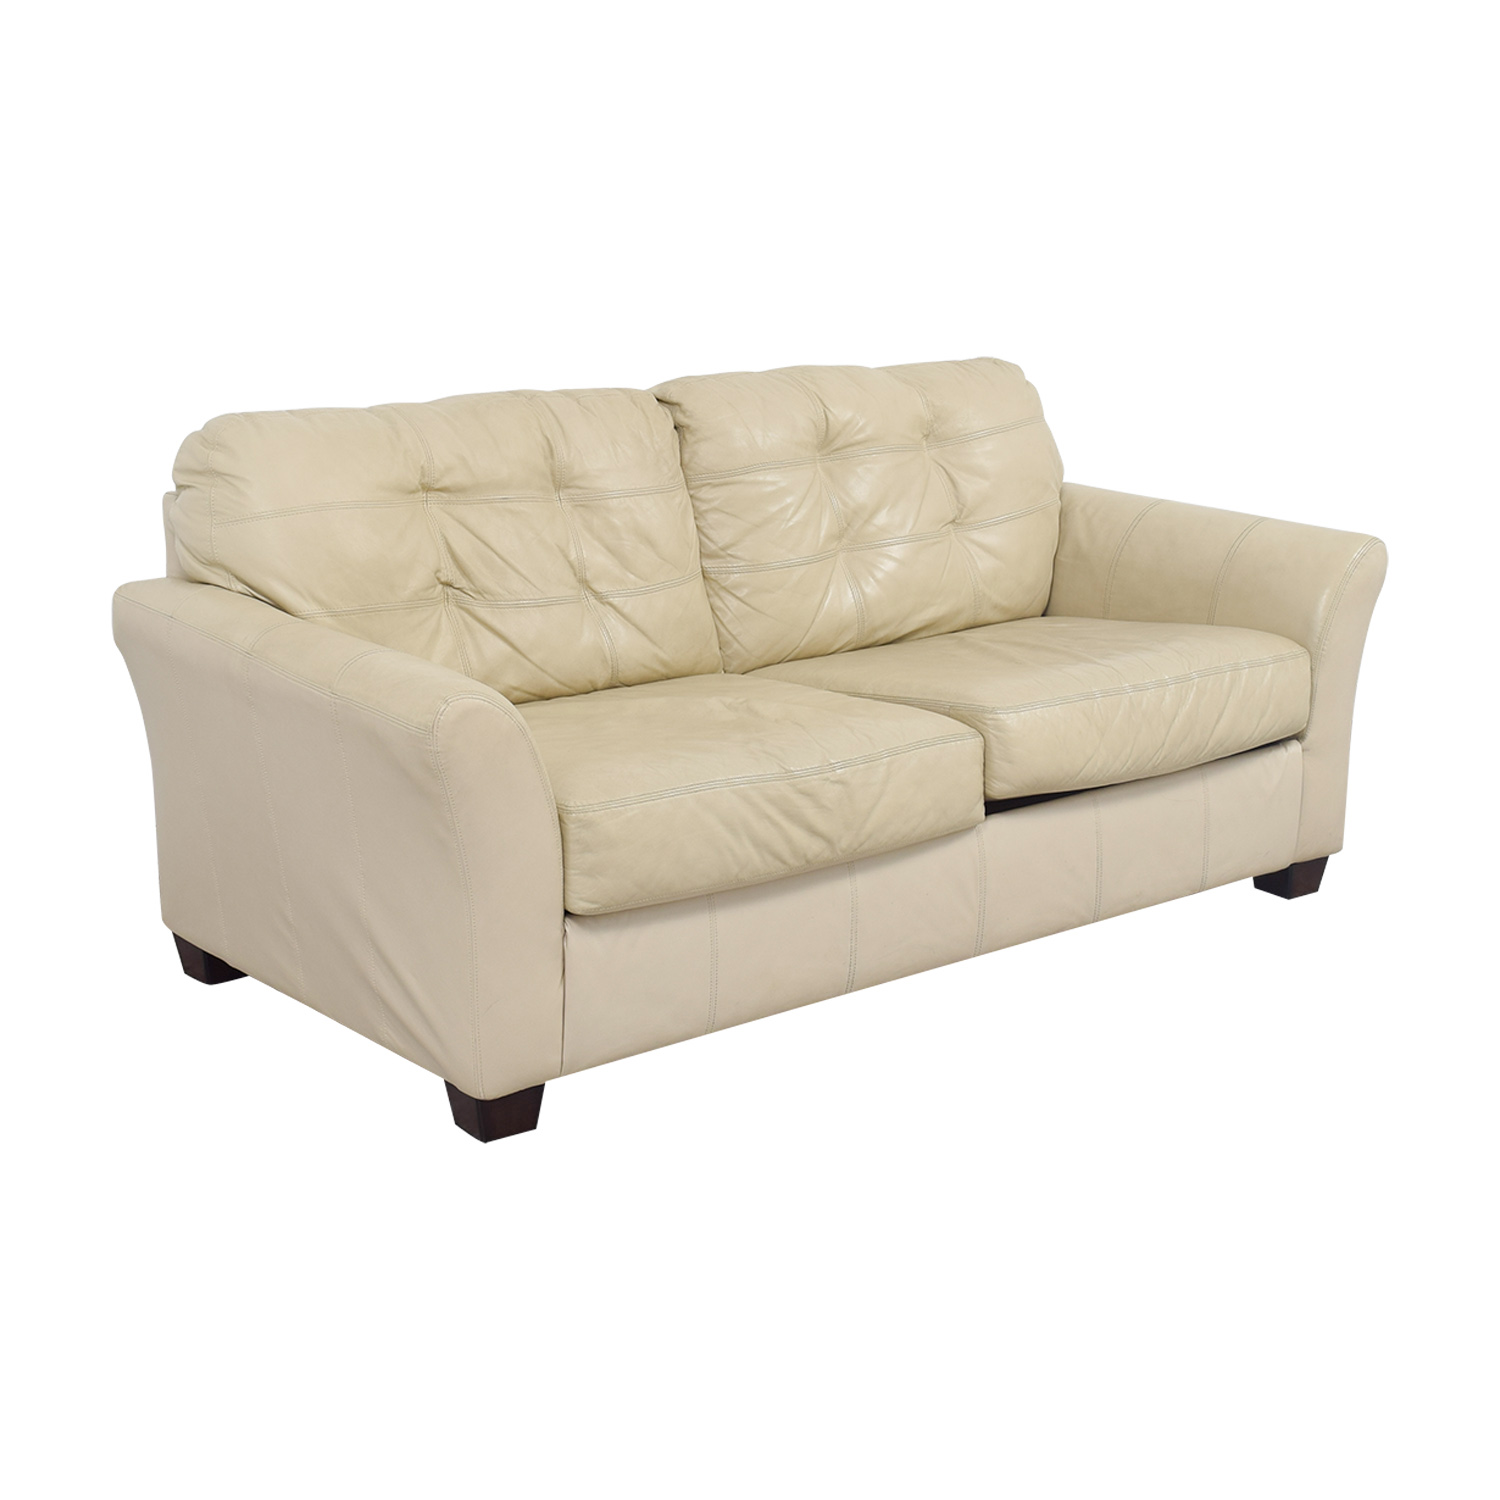 90% OFF - Ashley Furniture Ashley Furniture Tufted Cream Leather Two ...